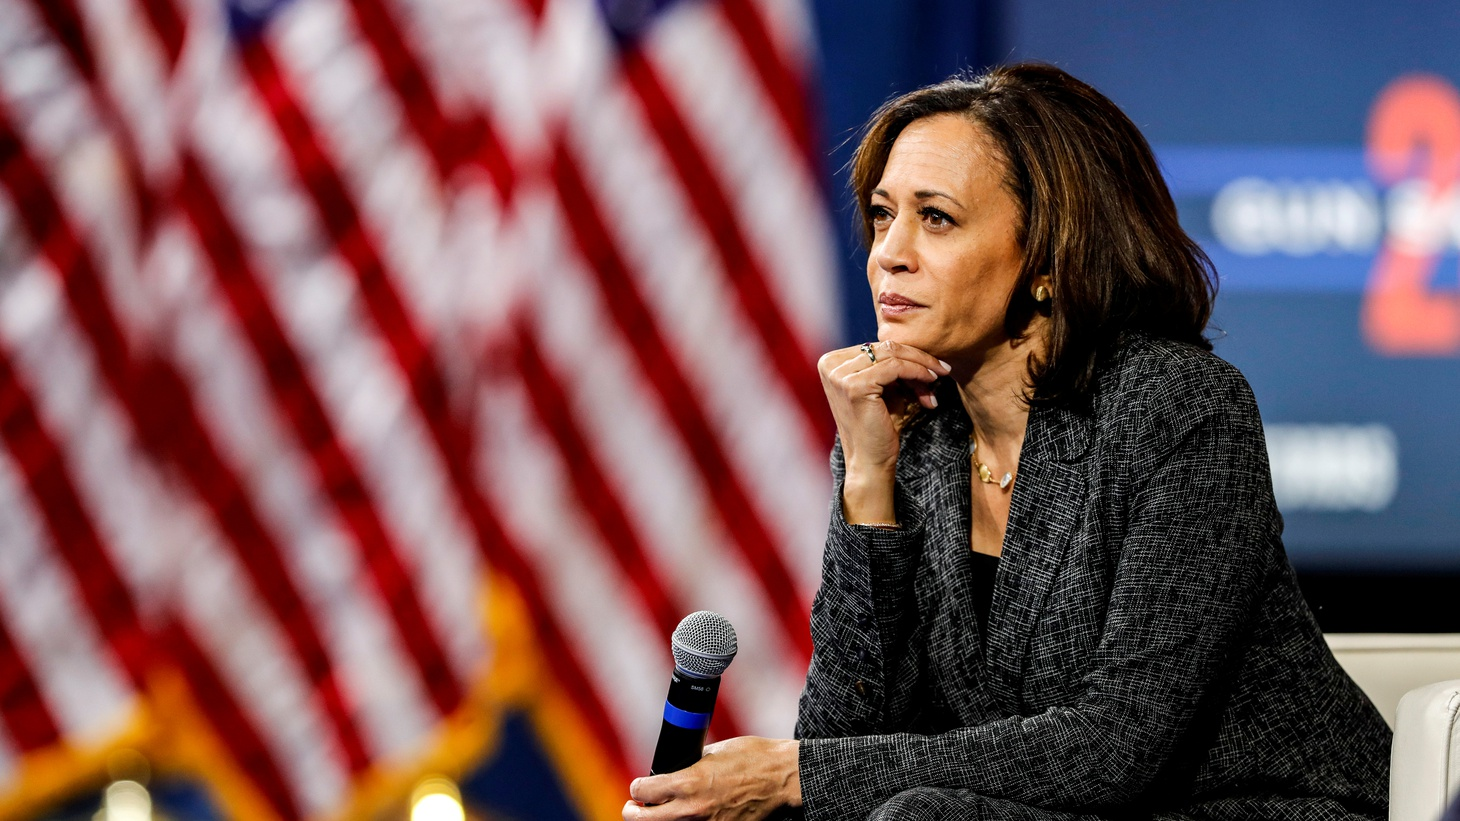 U.S. Democratic presidential candidate Sen. Kamala Harris (D-CA) listens to a question from the audience during a forum in Las Vegas, Nevada, U.S. October 2, 2019.